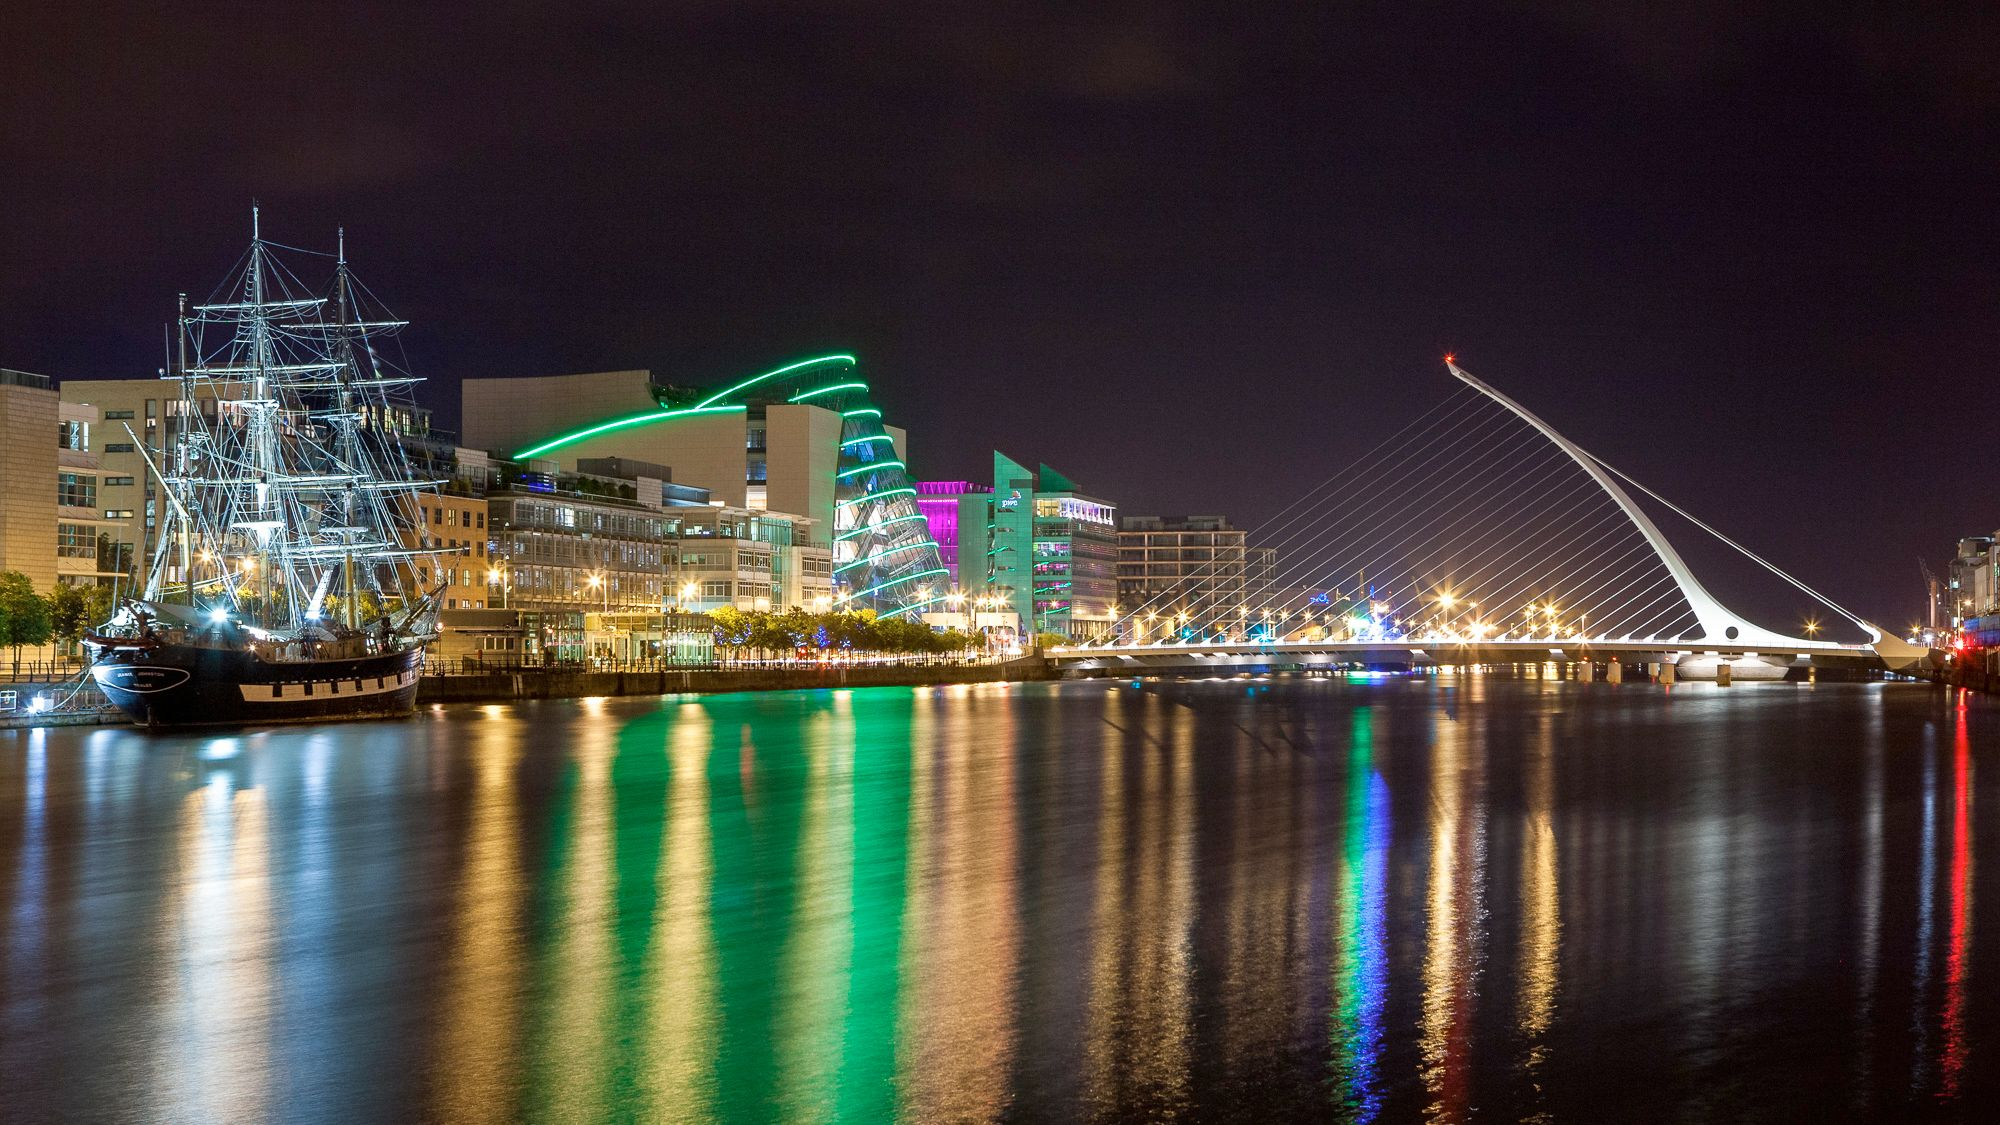 City and river at night in Dublin